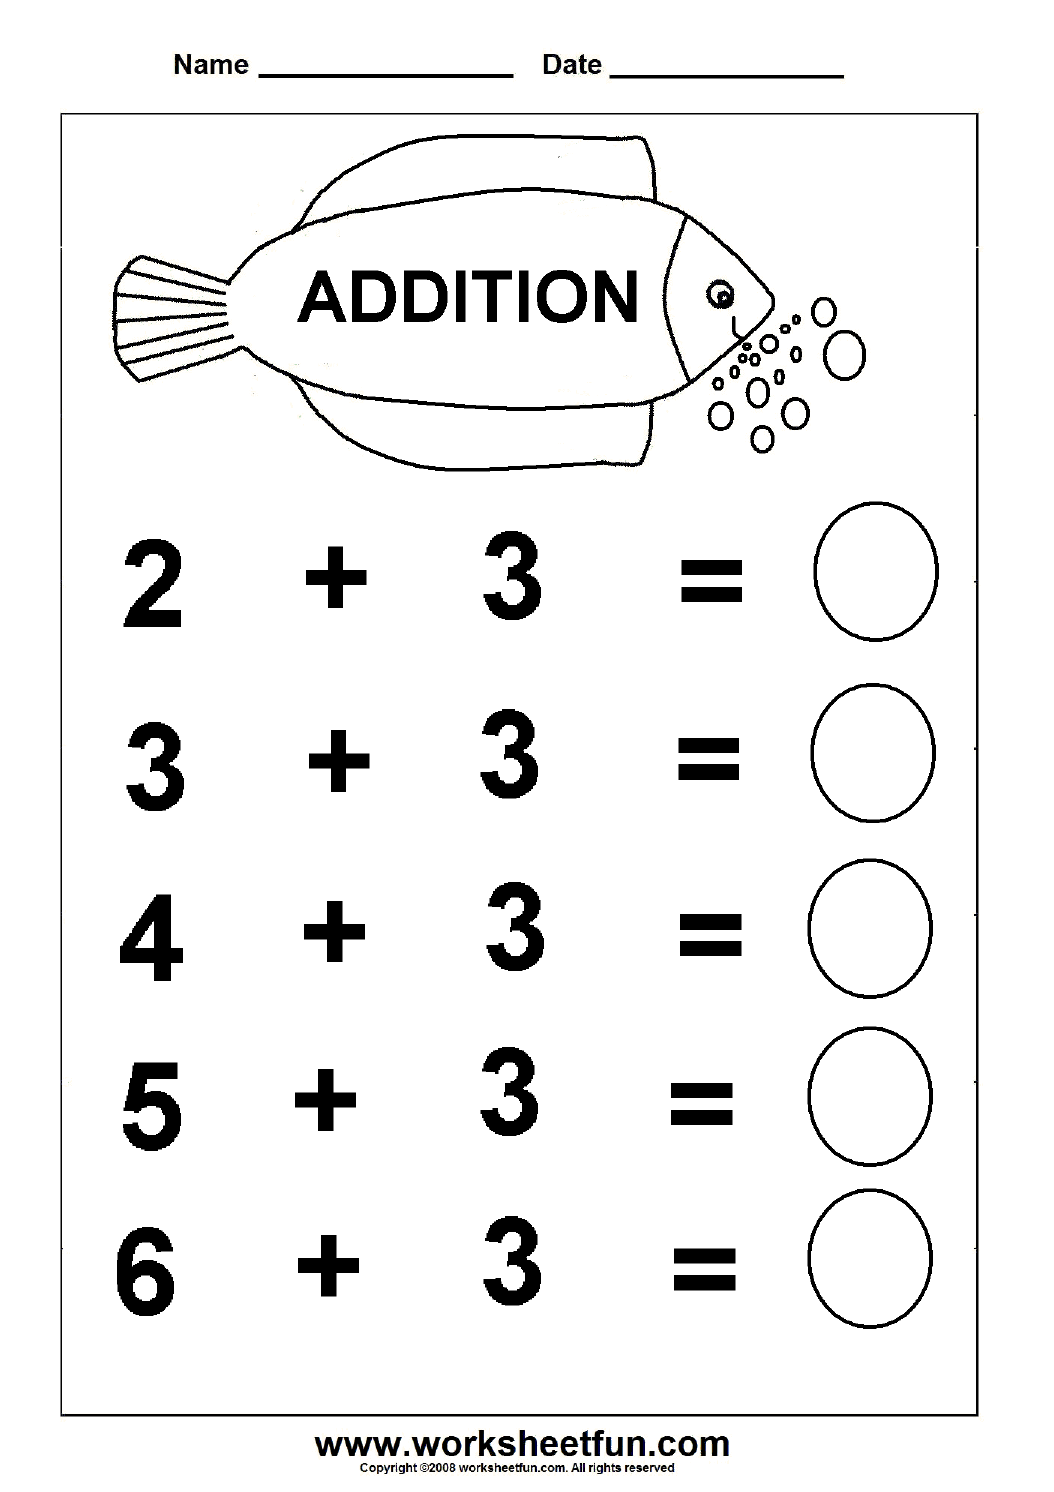 Addition Basic Addition Facts FREE Printable Worksheets – Addition with Zero Worksheets